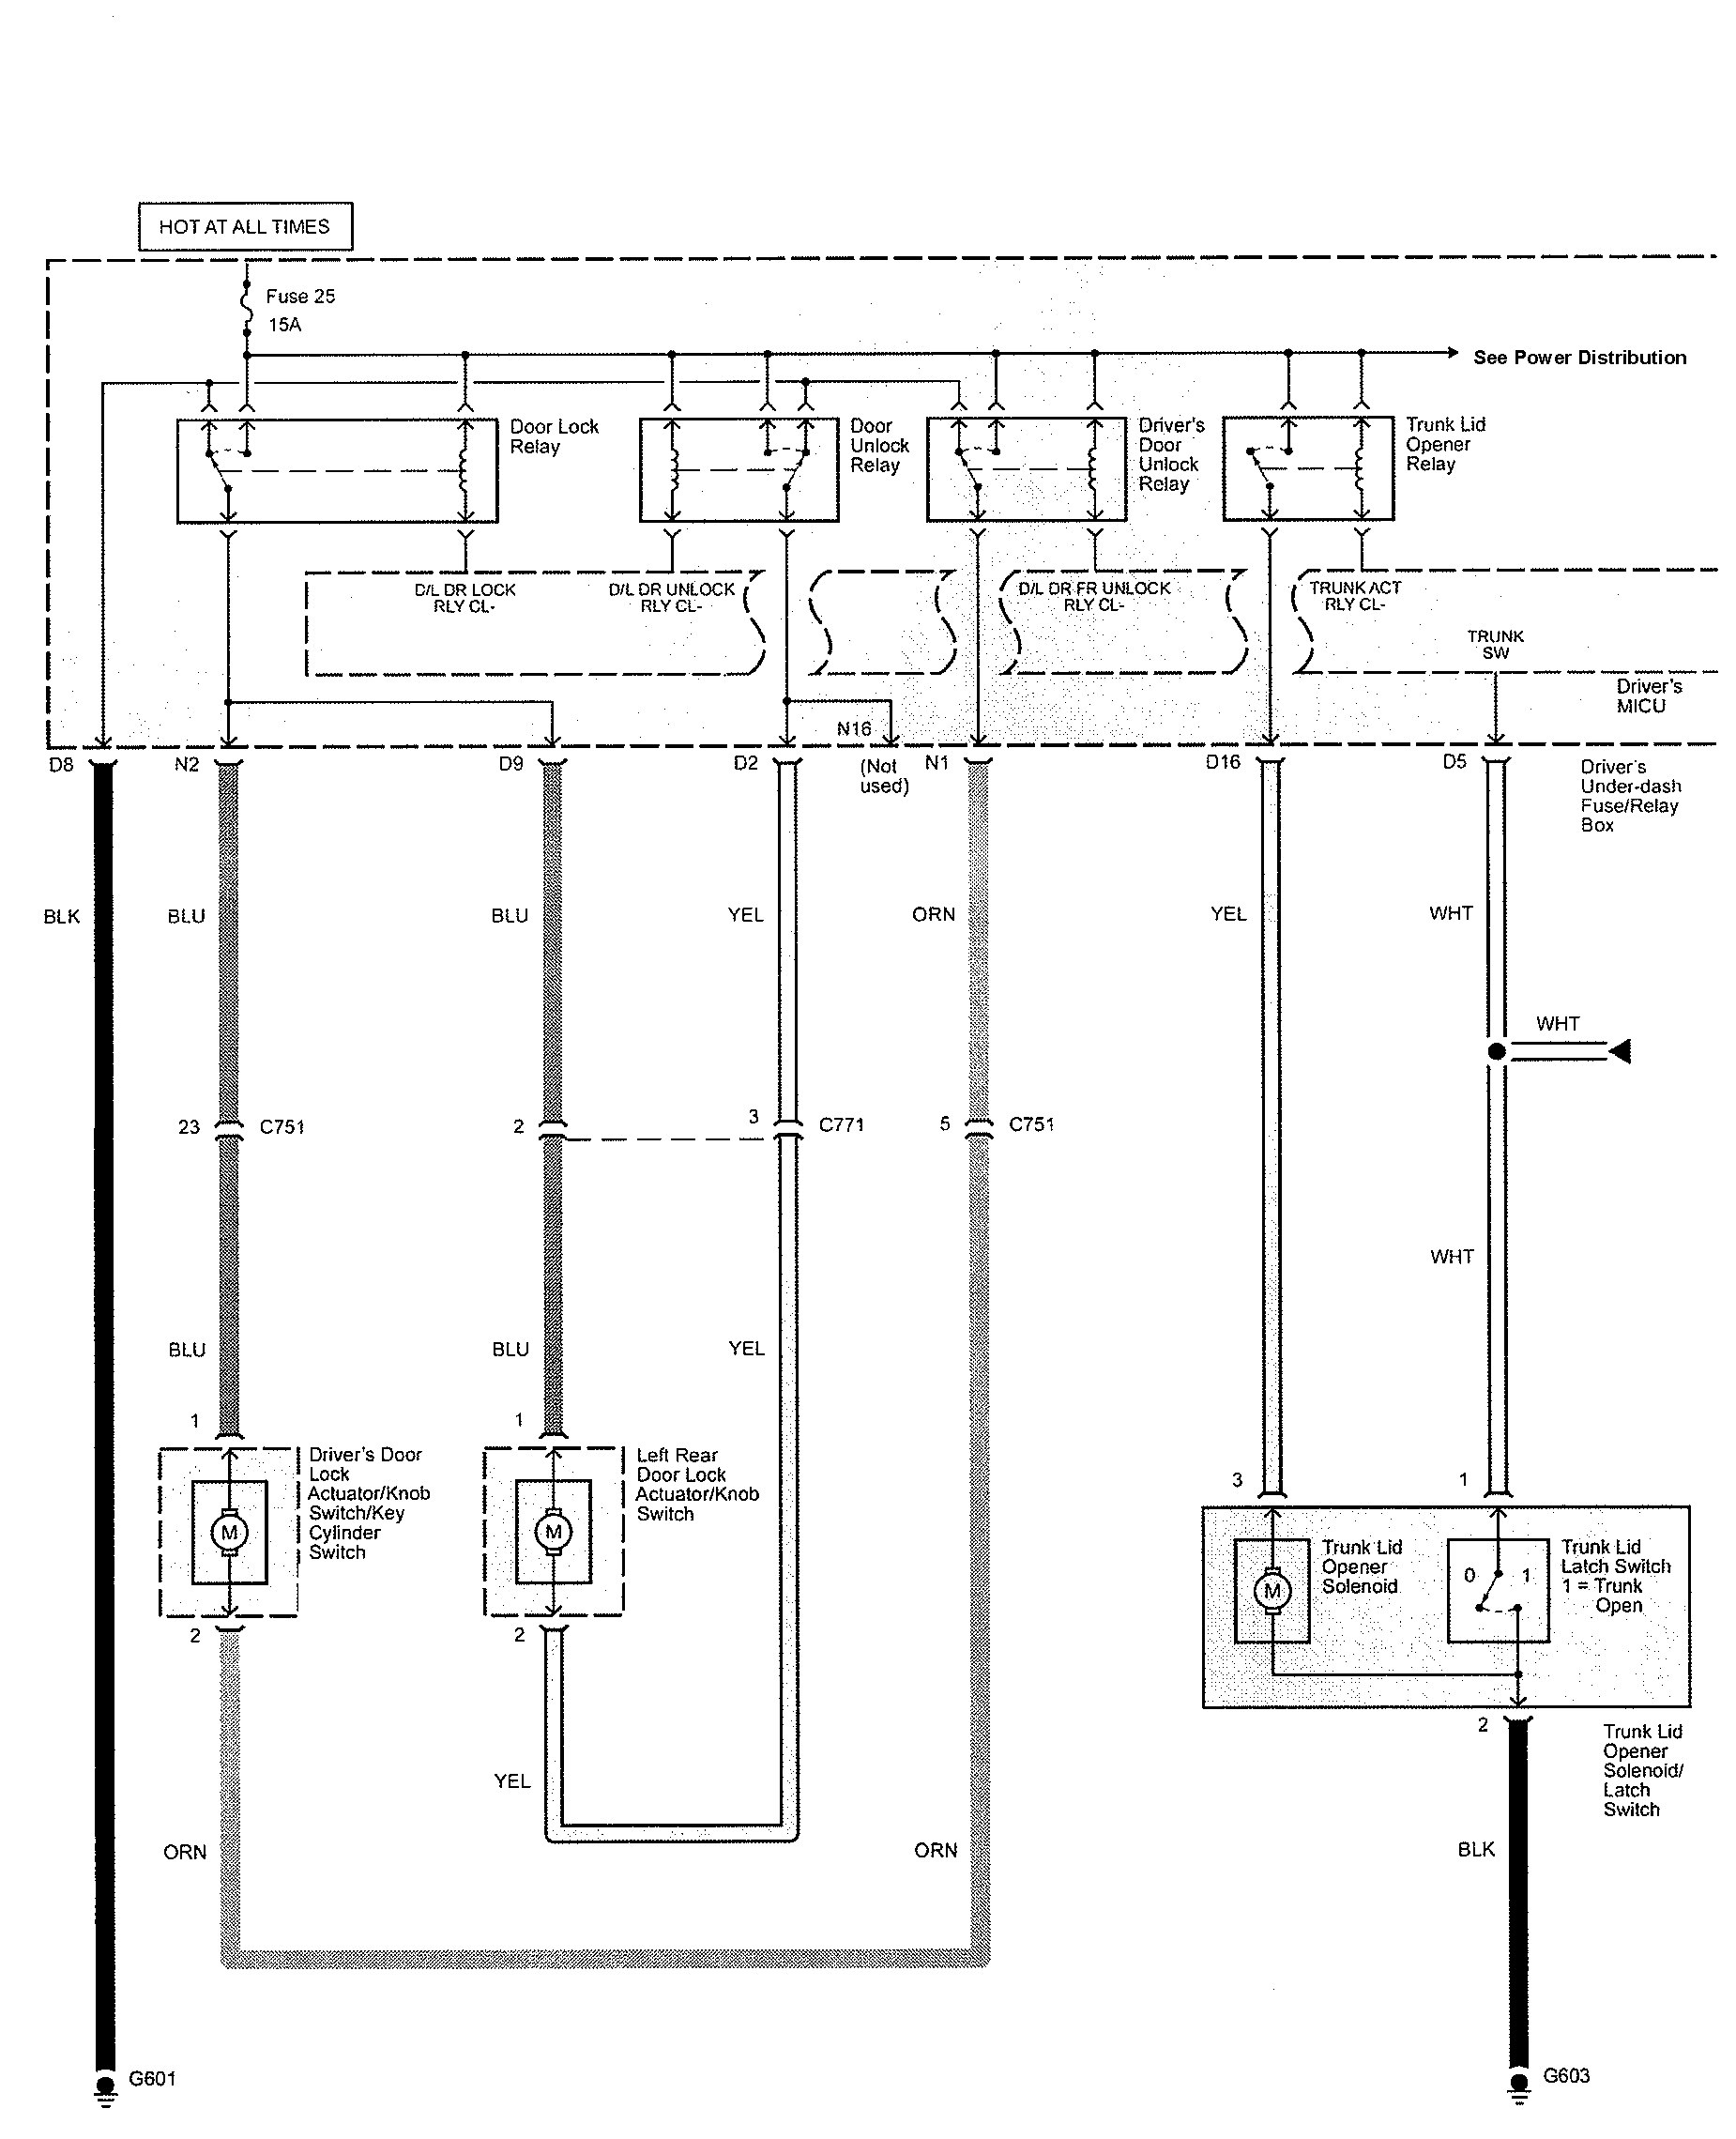 Acura Tl  2009 - 2010  - Wiring Diagrams